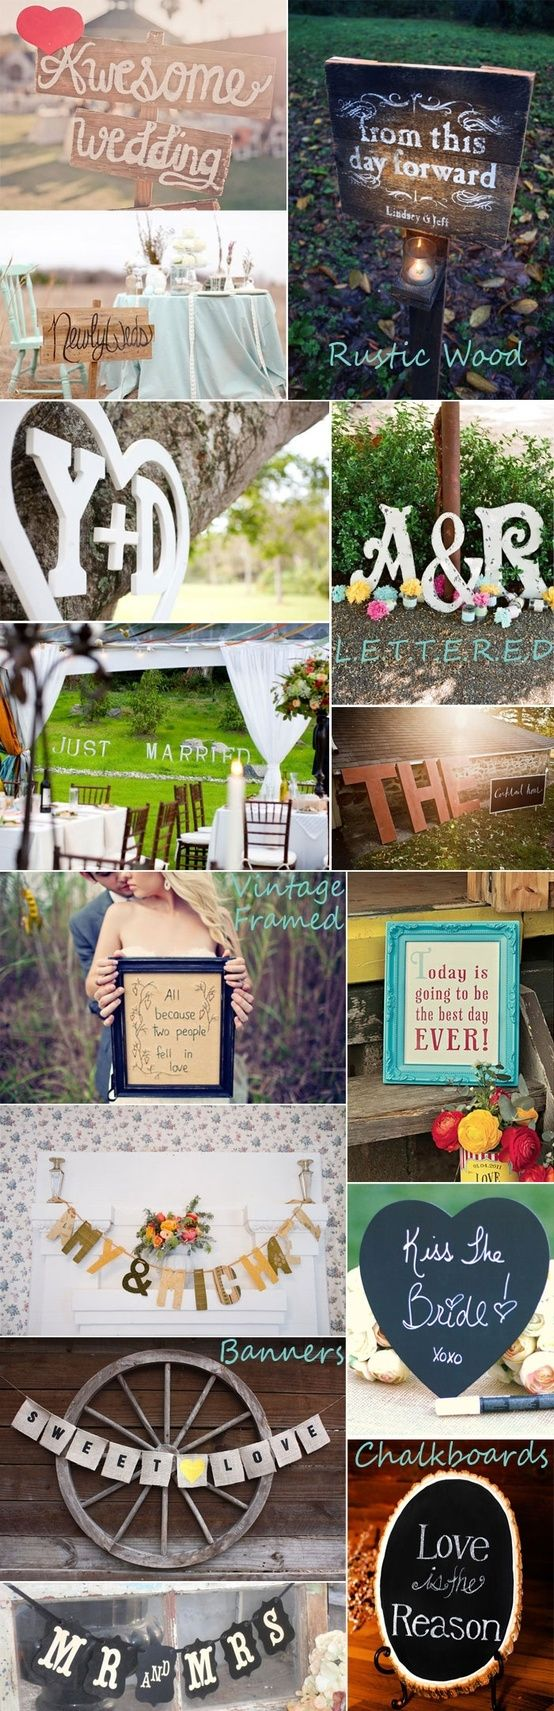 wedding signs -